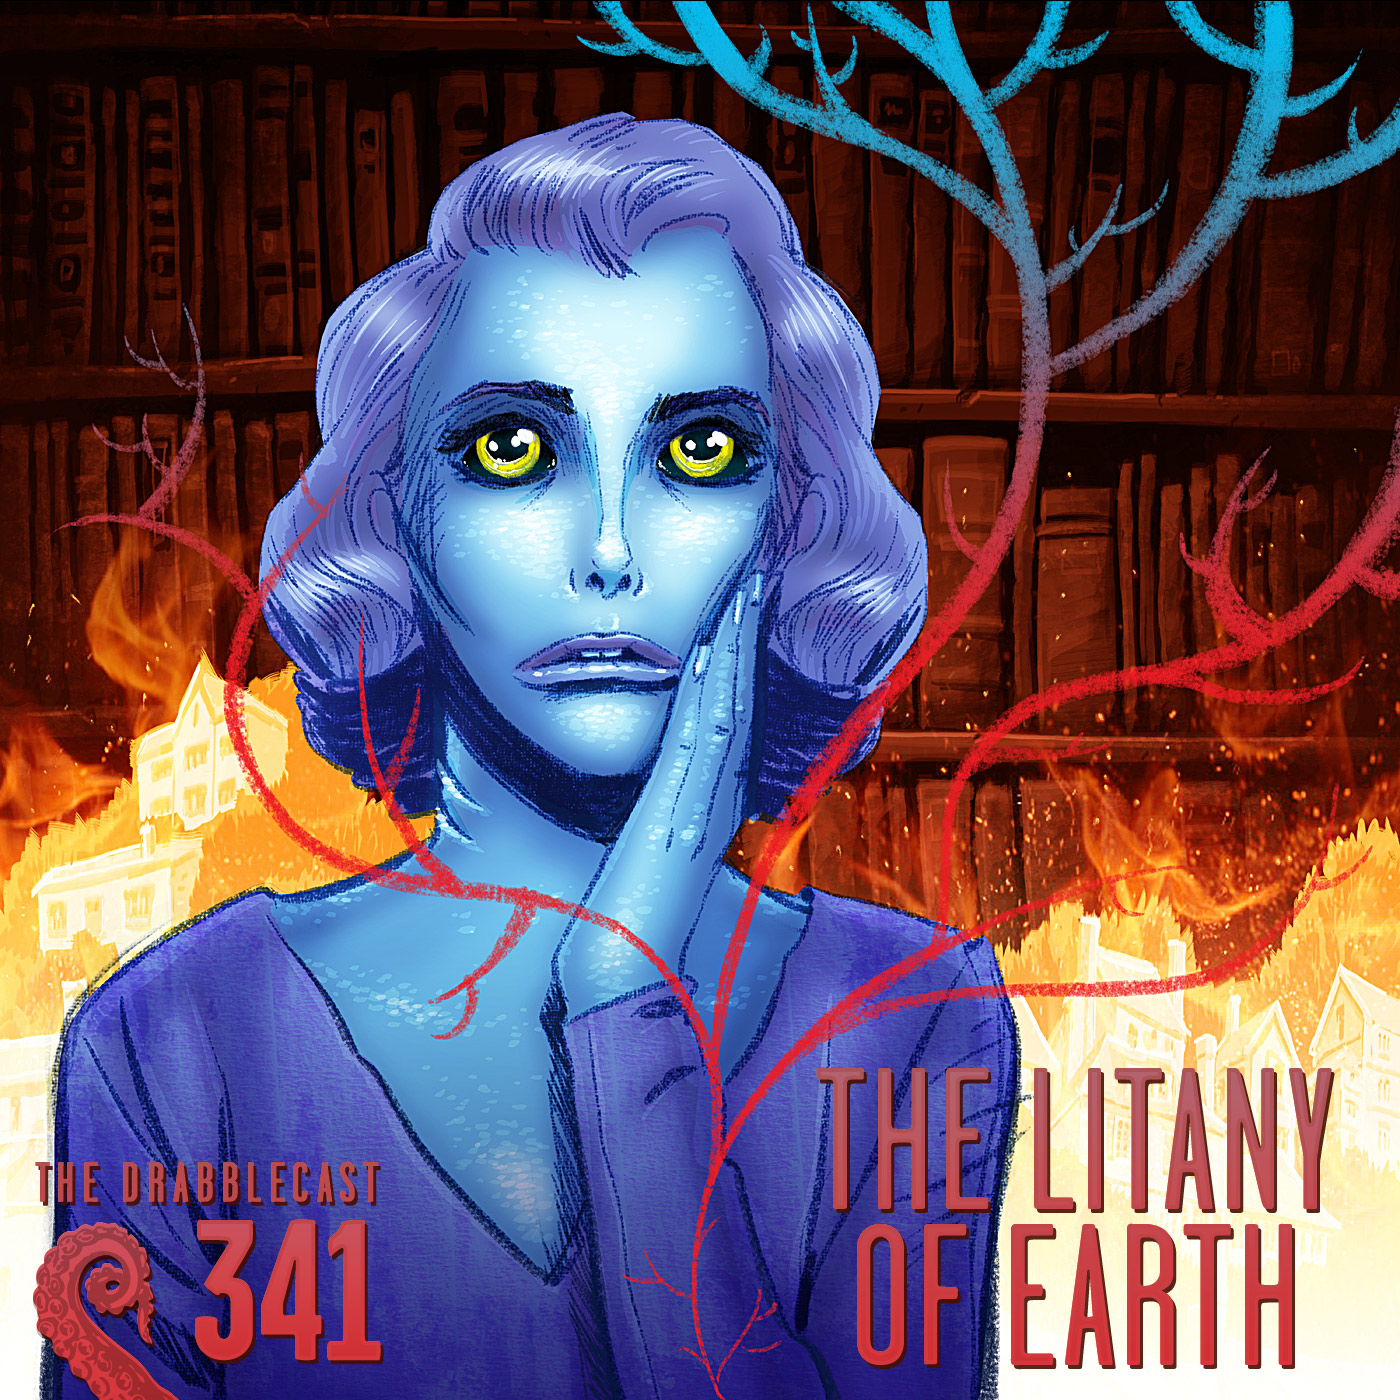 Cover for Drabblecast episode 341, The Litany of Earth, by Bill Halliar